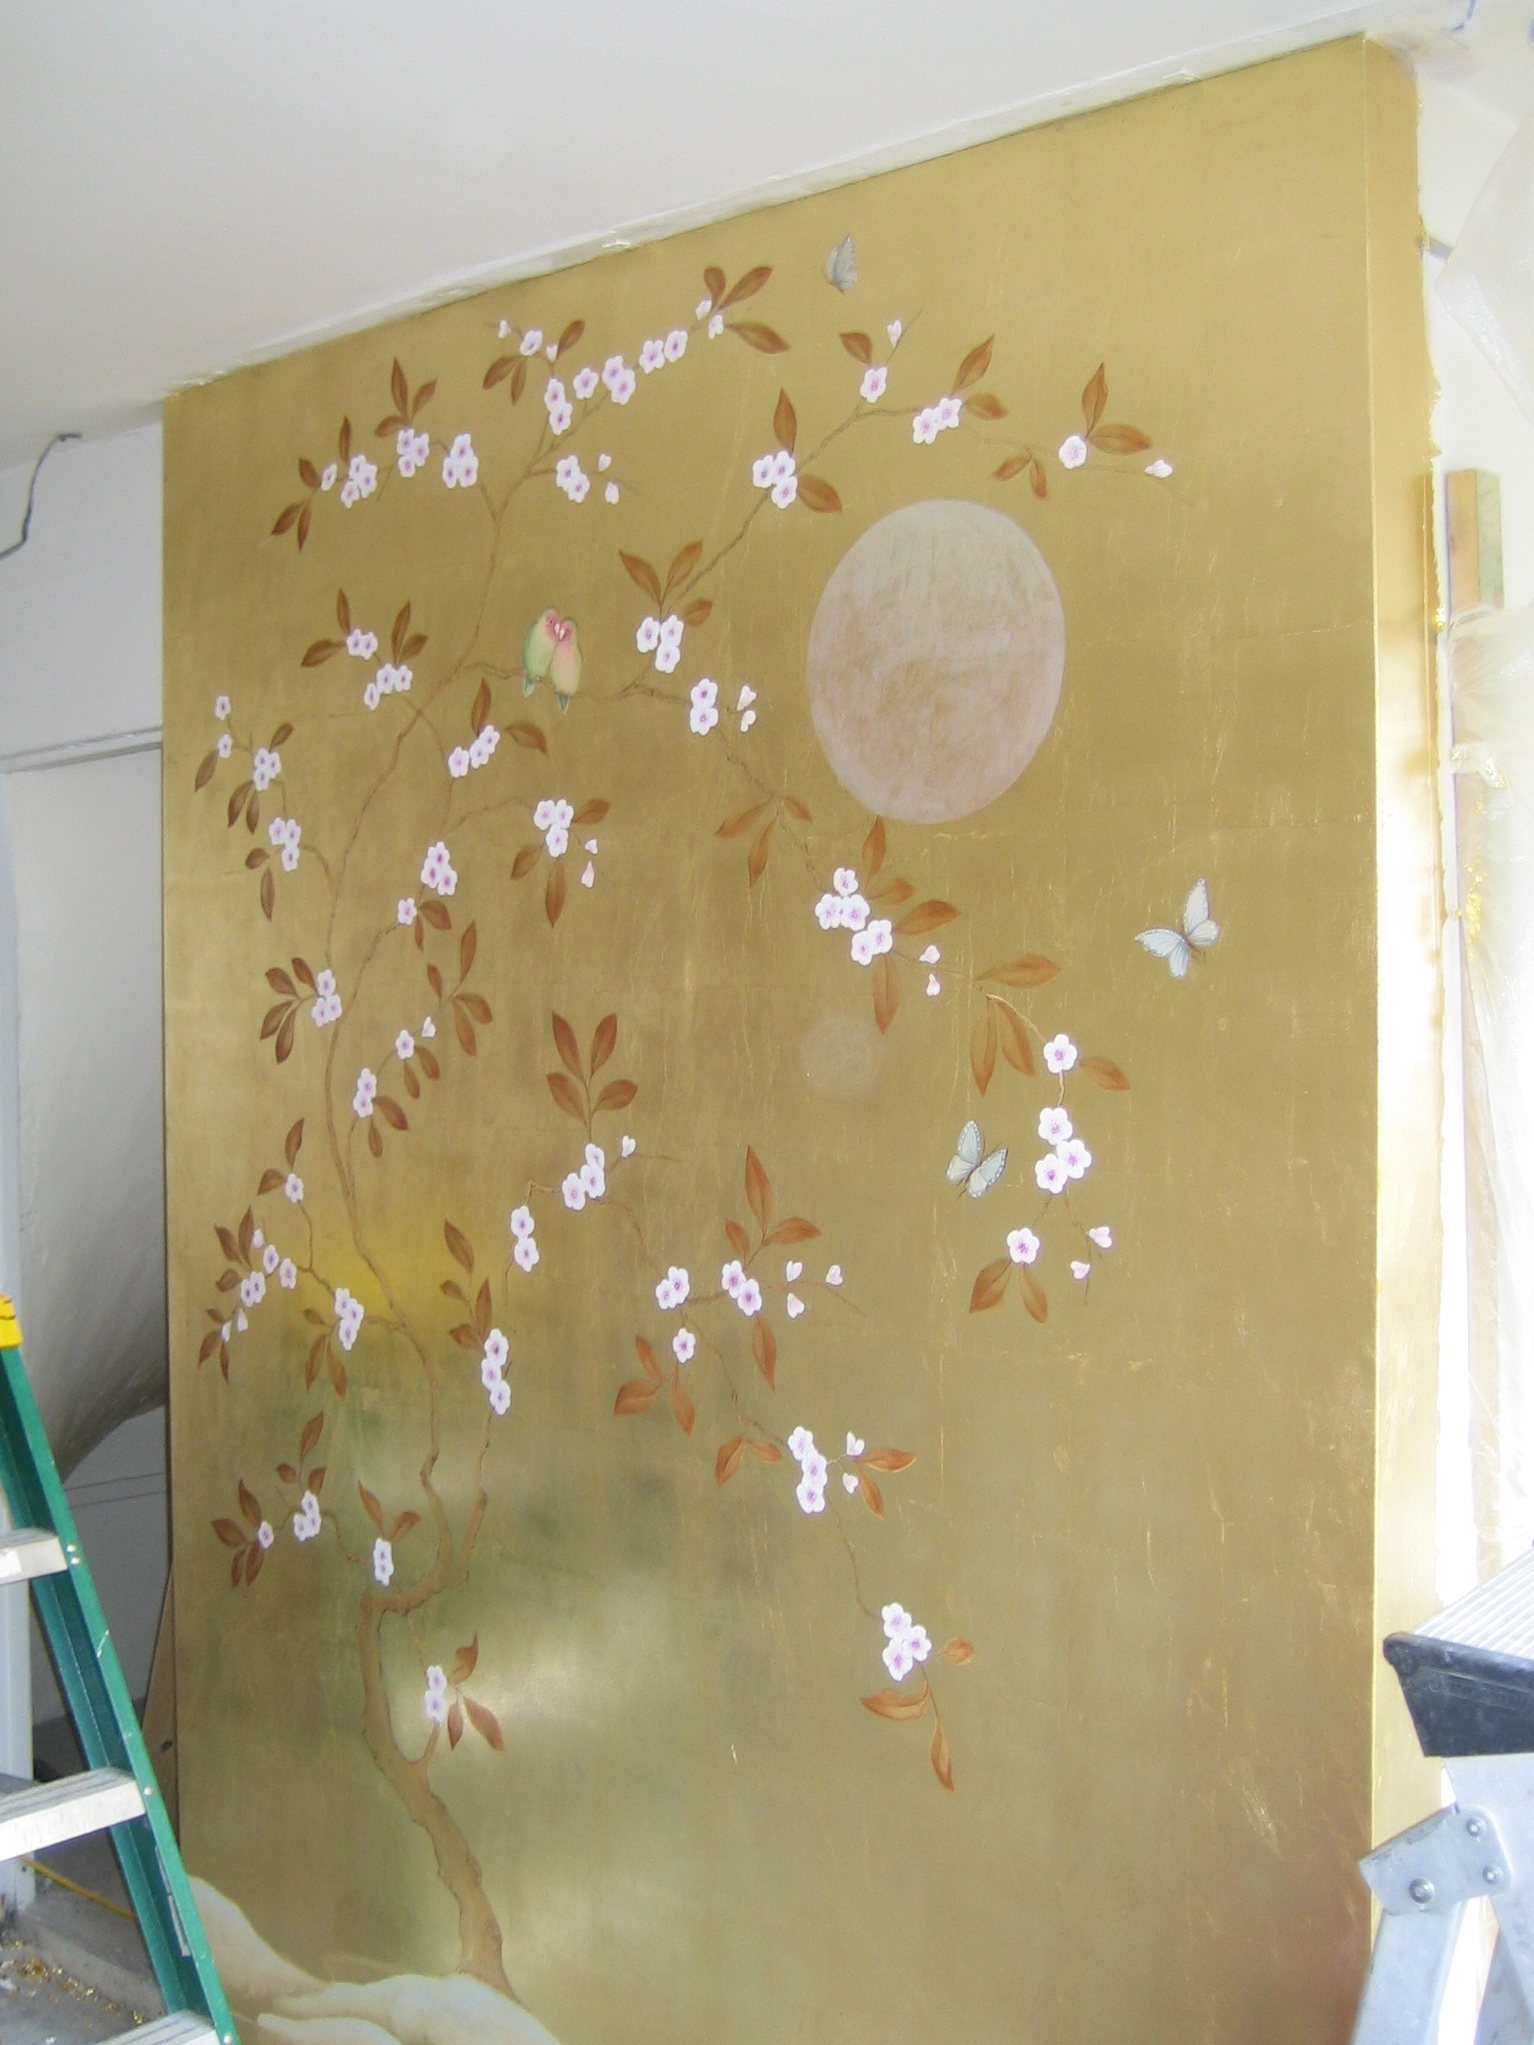 Decorative gold mural statement wall